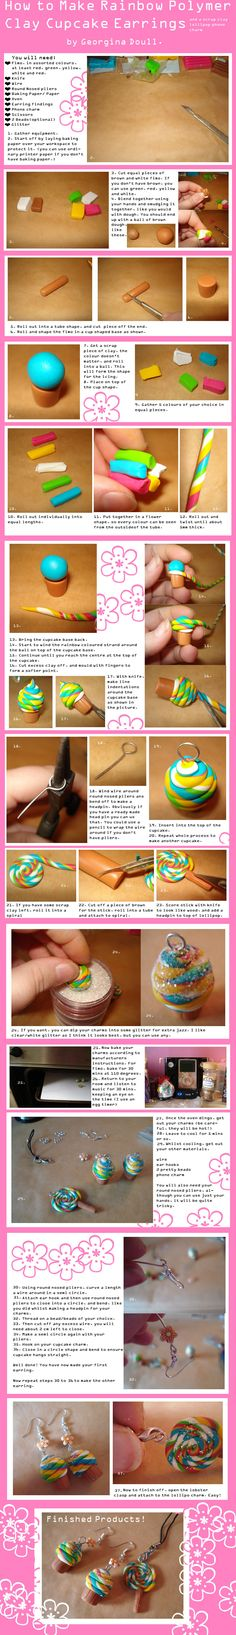 How to Make Cupcake Earrings by ~geurge on deviantART